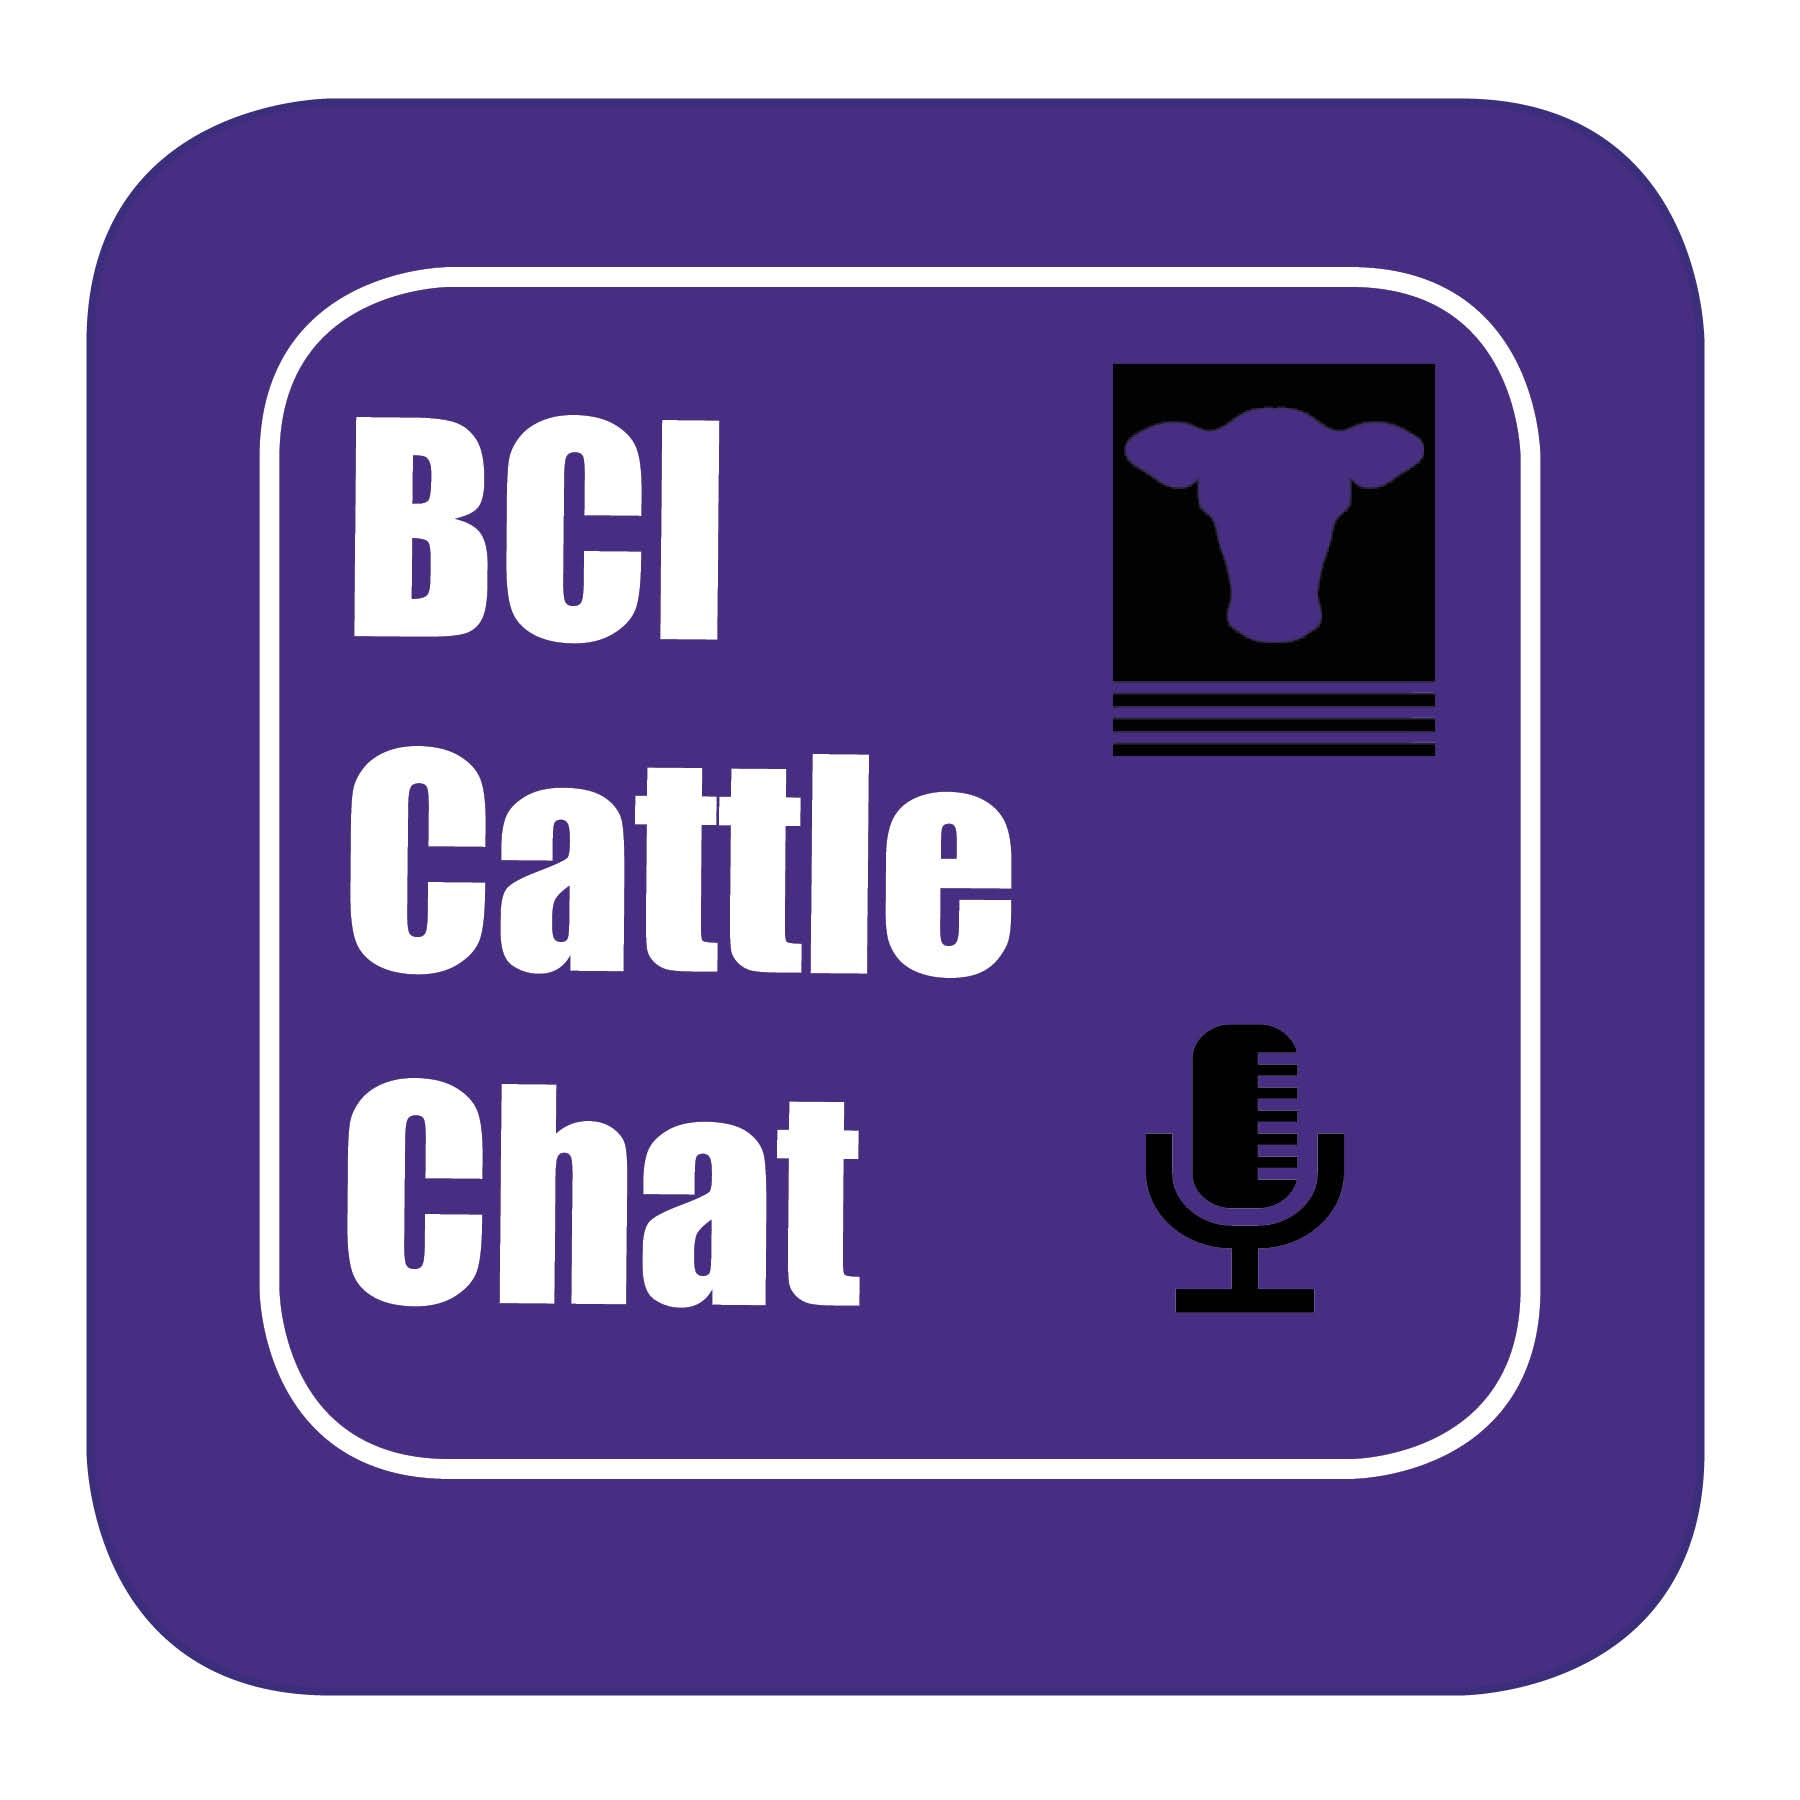 BCI Cattle Chat - Episode 45